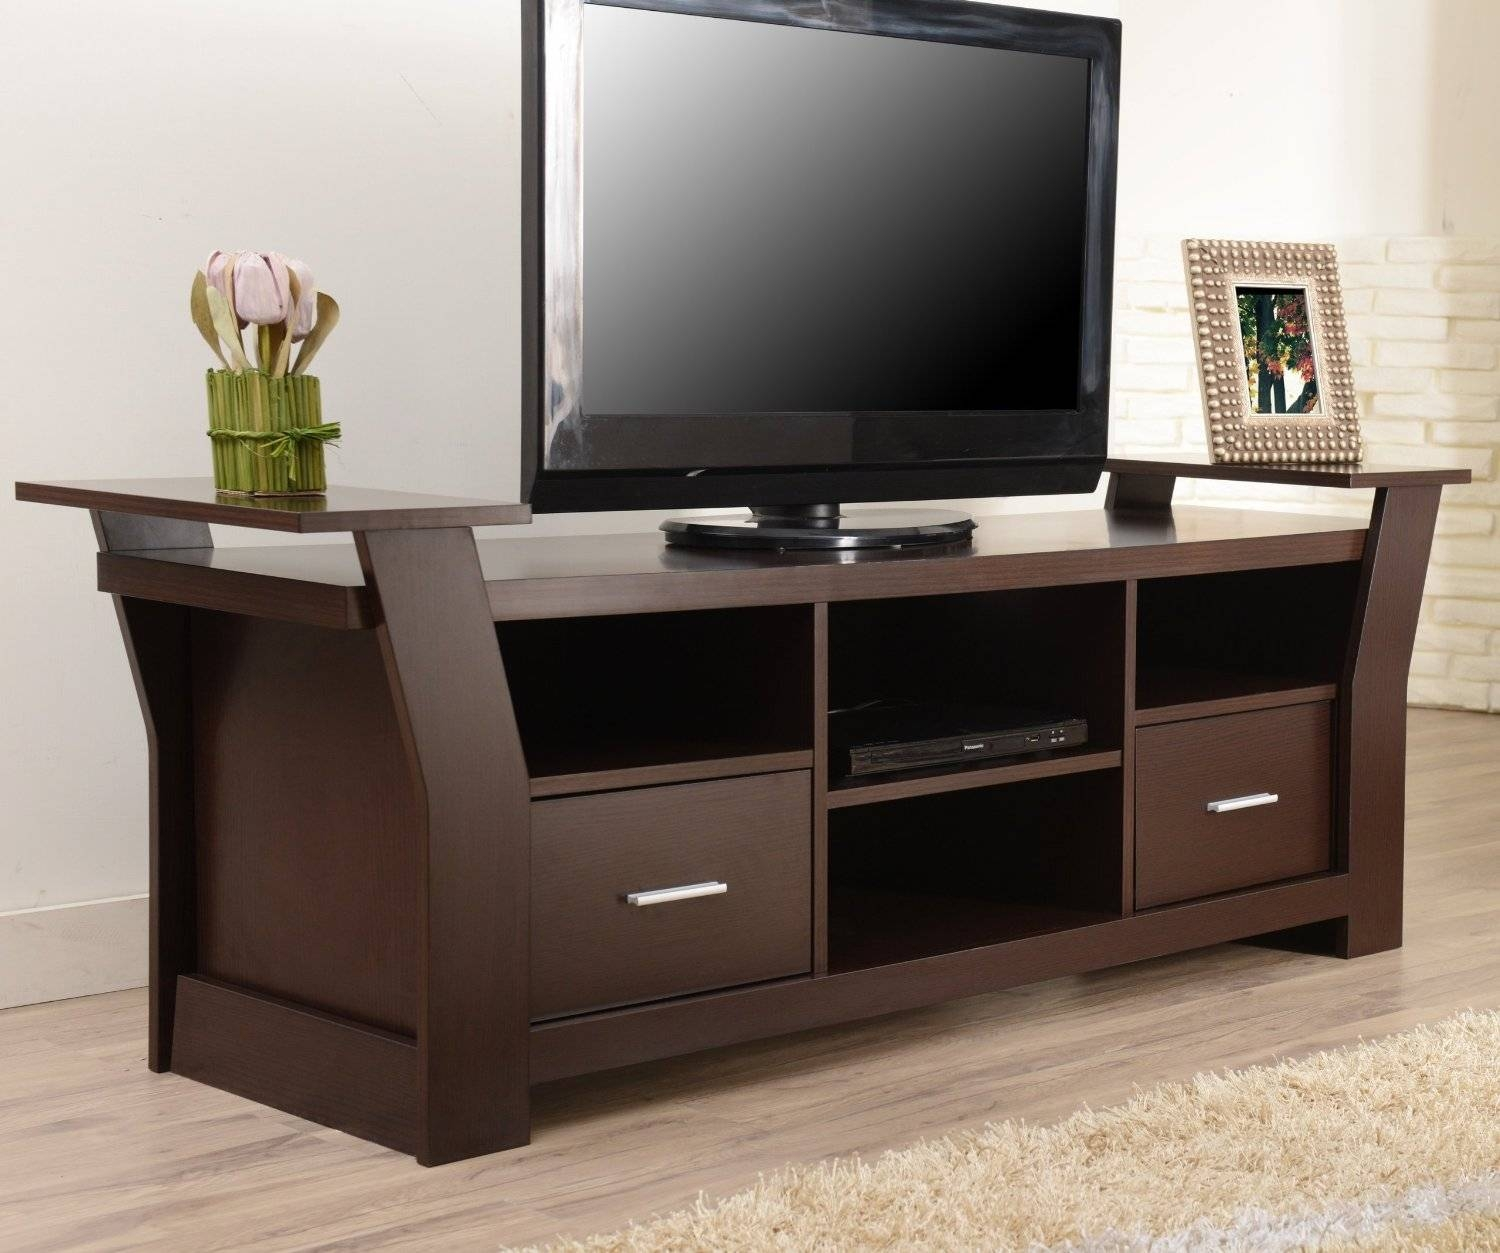 Flat Screens At Walmart For Telly Tv Stands (View 12 of 15)